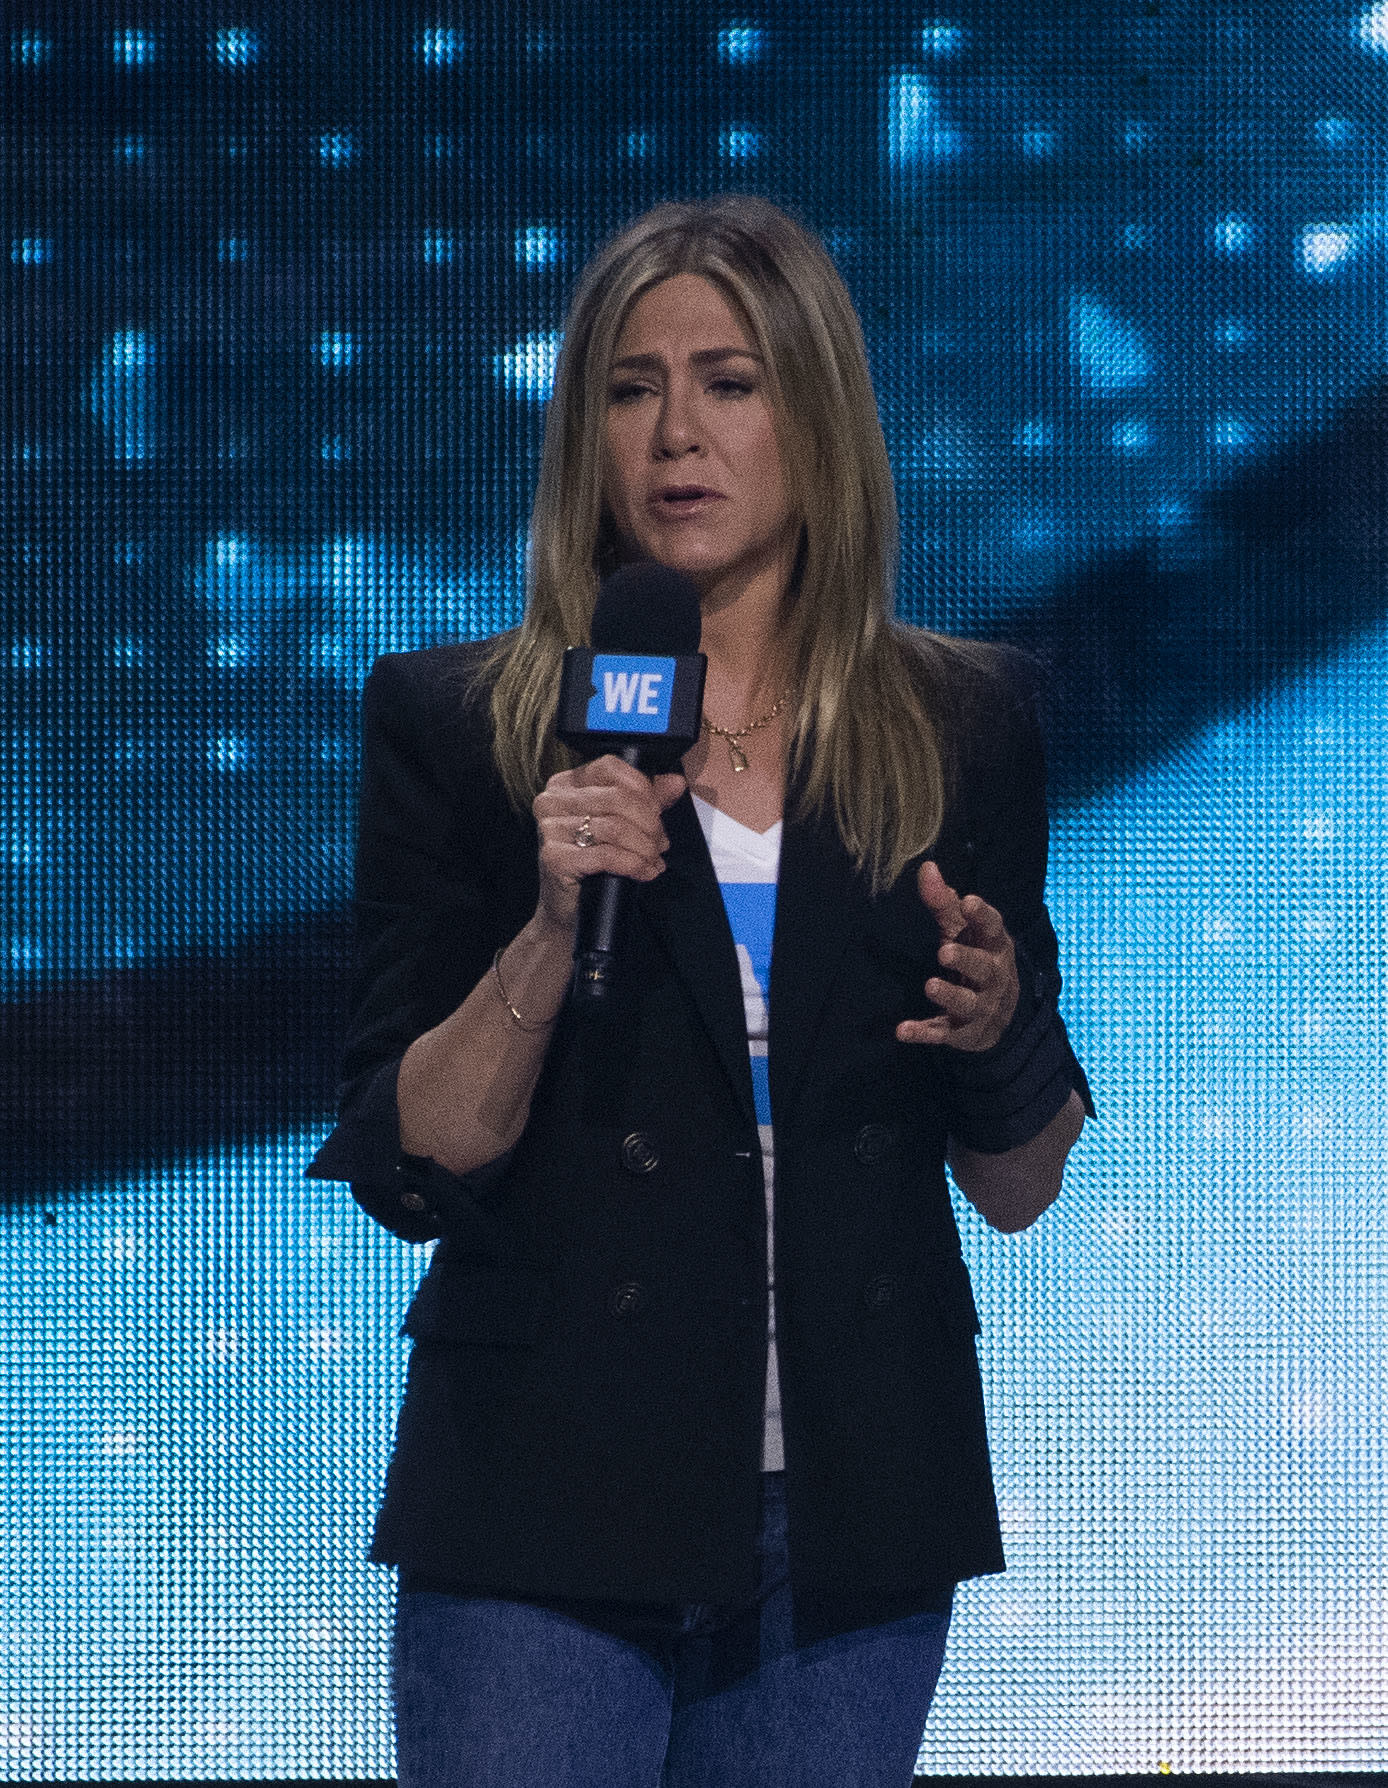 Actress Jennifer Aniston speaks on stage at the WE Day California at The Forum, in Inglewood, California, on April 19, 2018. (Photo by VALERIE MACON / AFP)        (Photo credit should read VALERIE MACON/AFP/Getty Images)